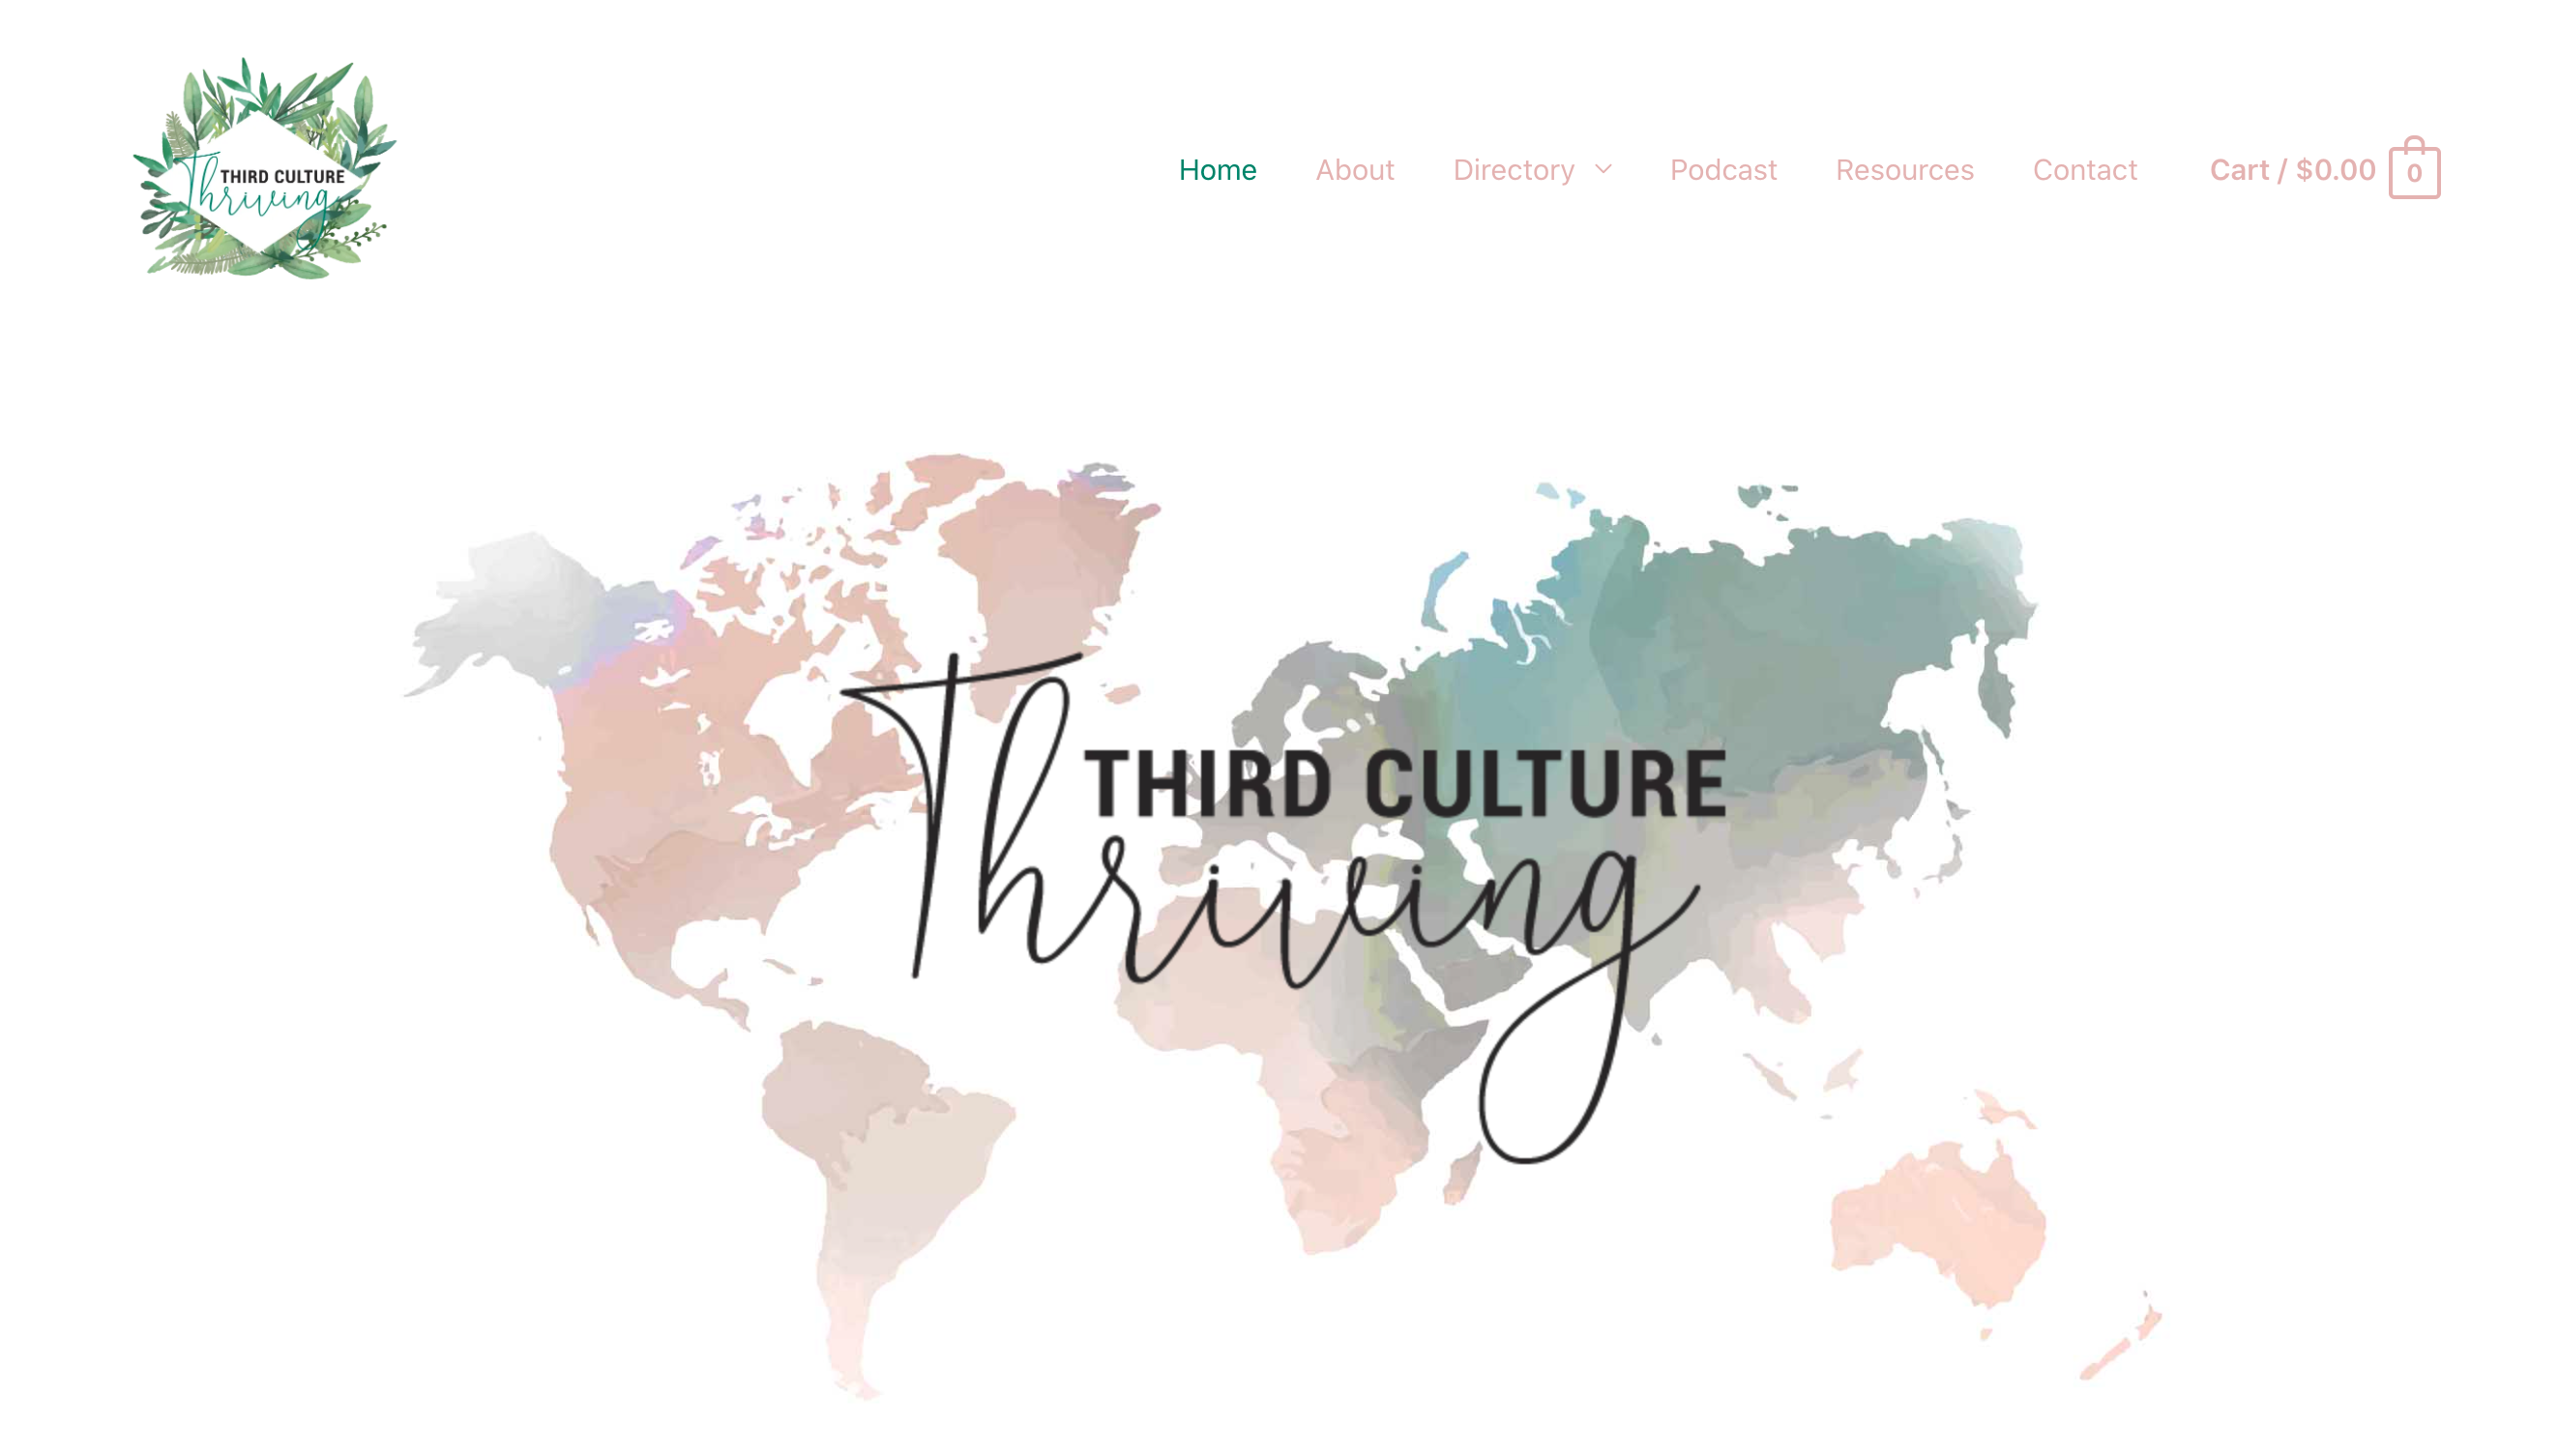 Third Culture Thriving